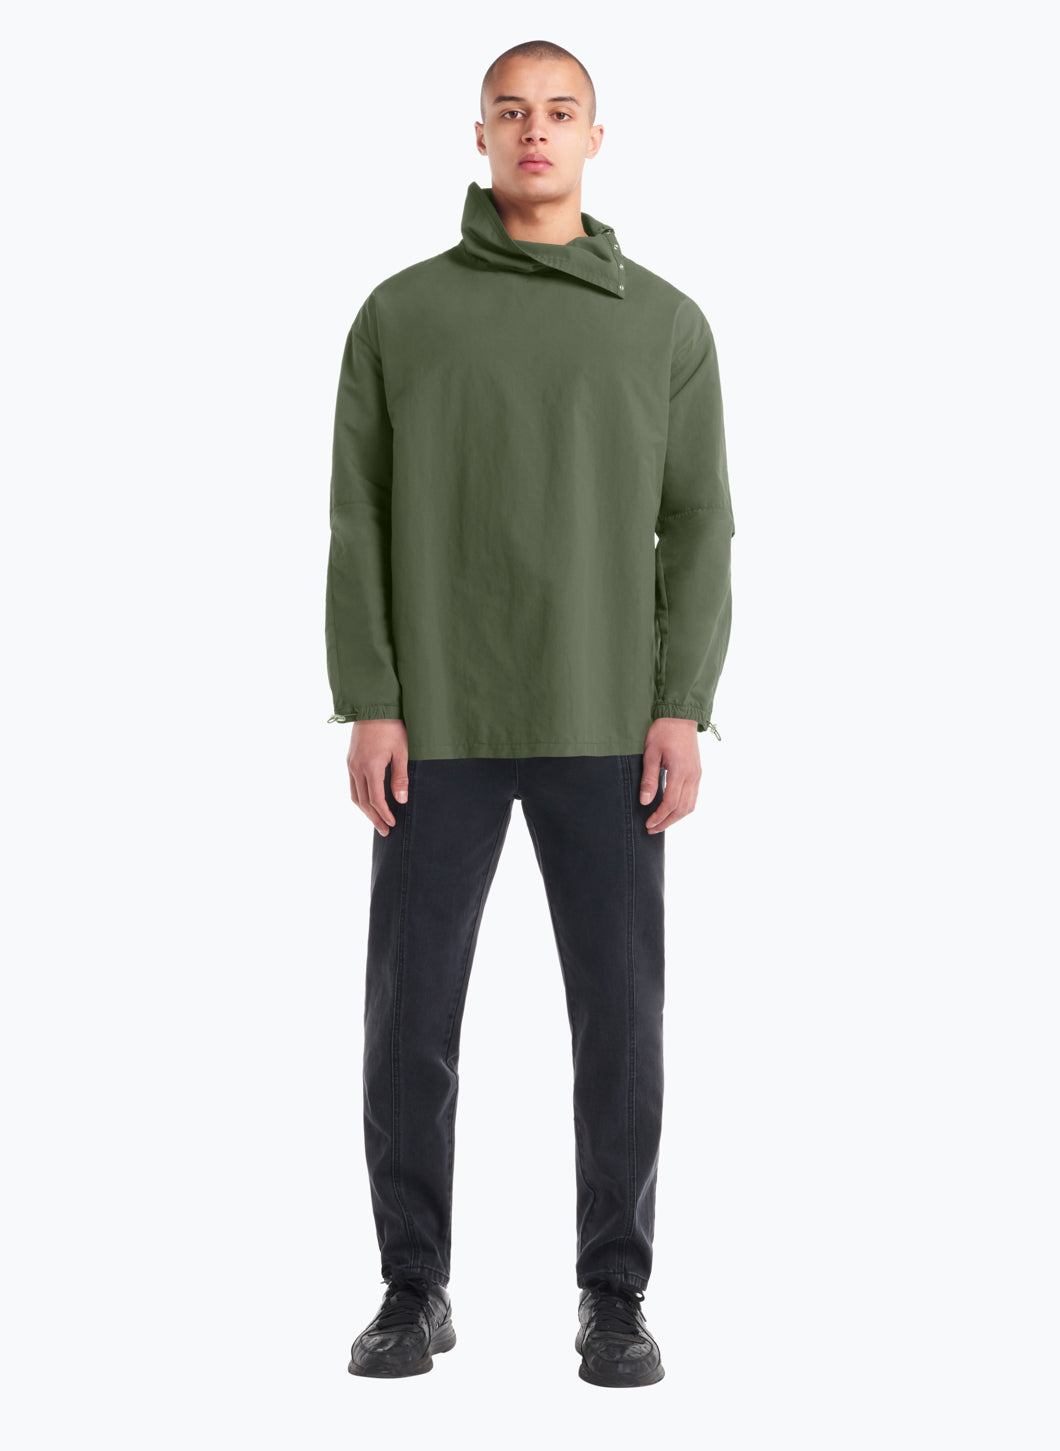 High Funnel Neck Sweatshirt with Side Buttons in Olive Technical Material